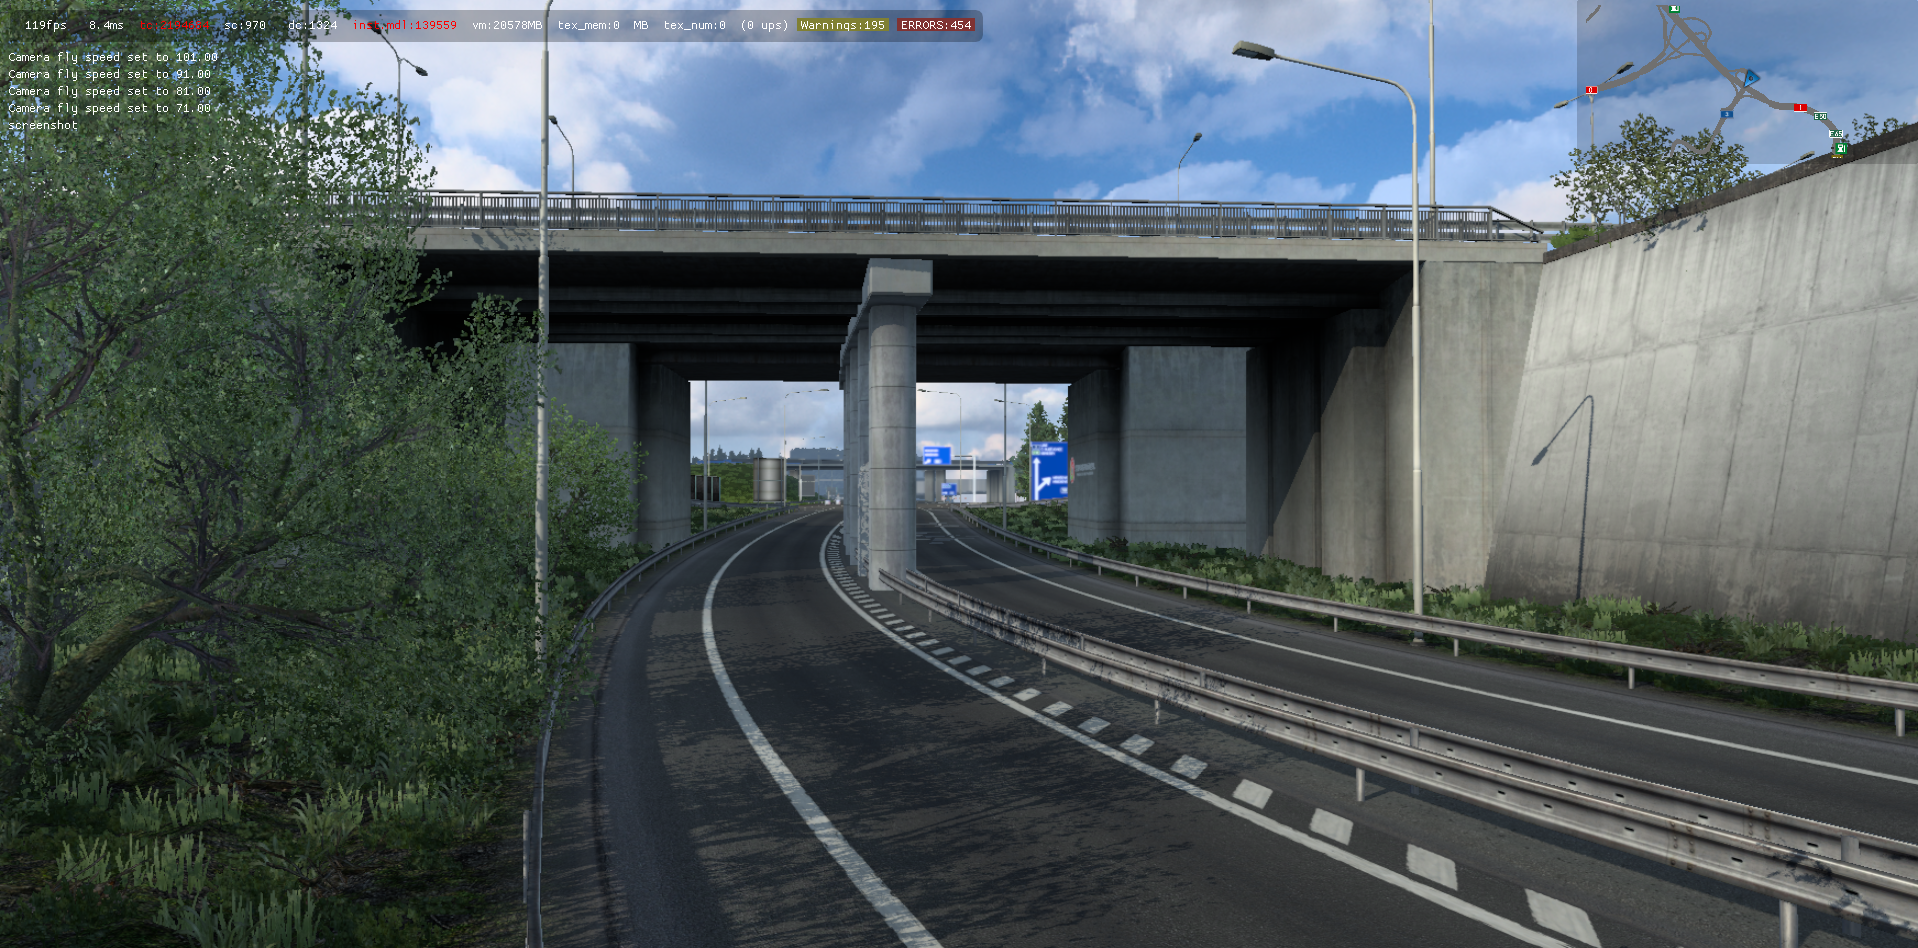 ets2_20210725_231840_00.png